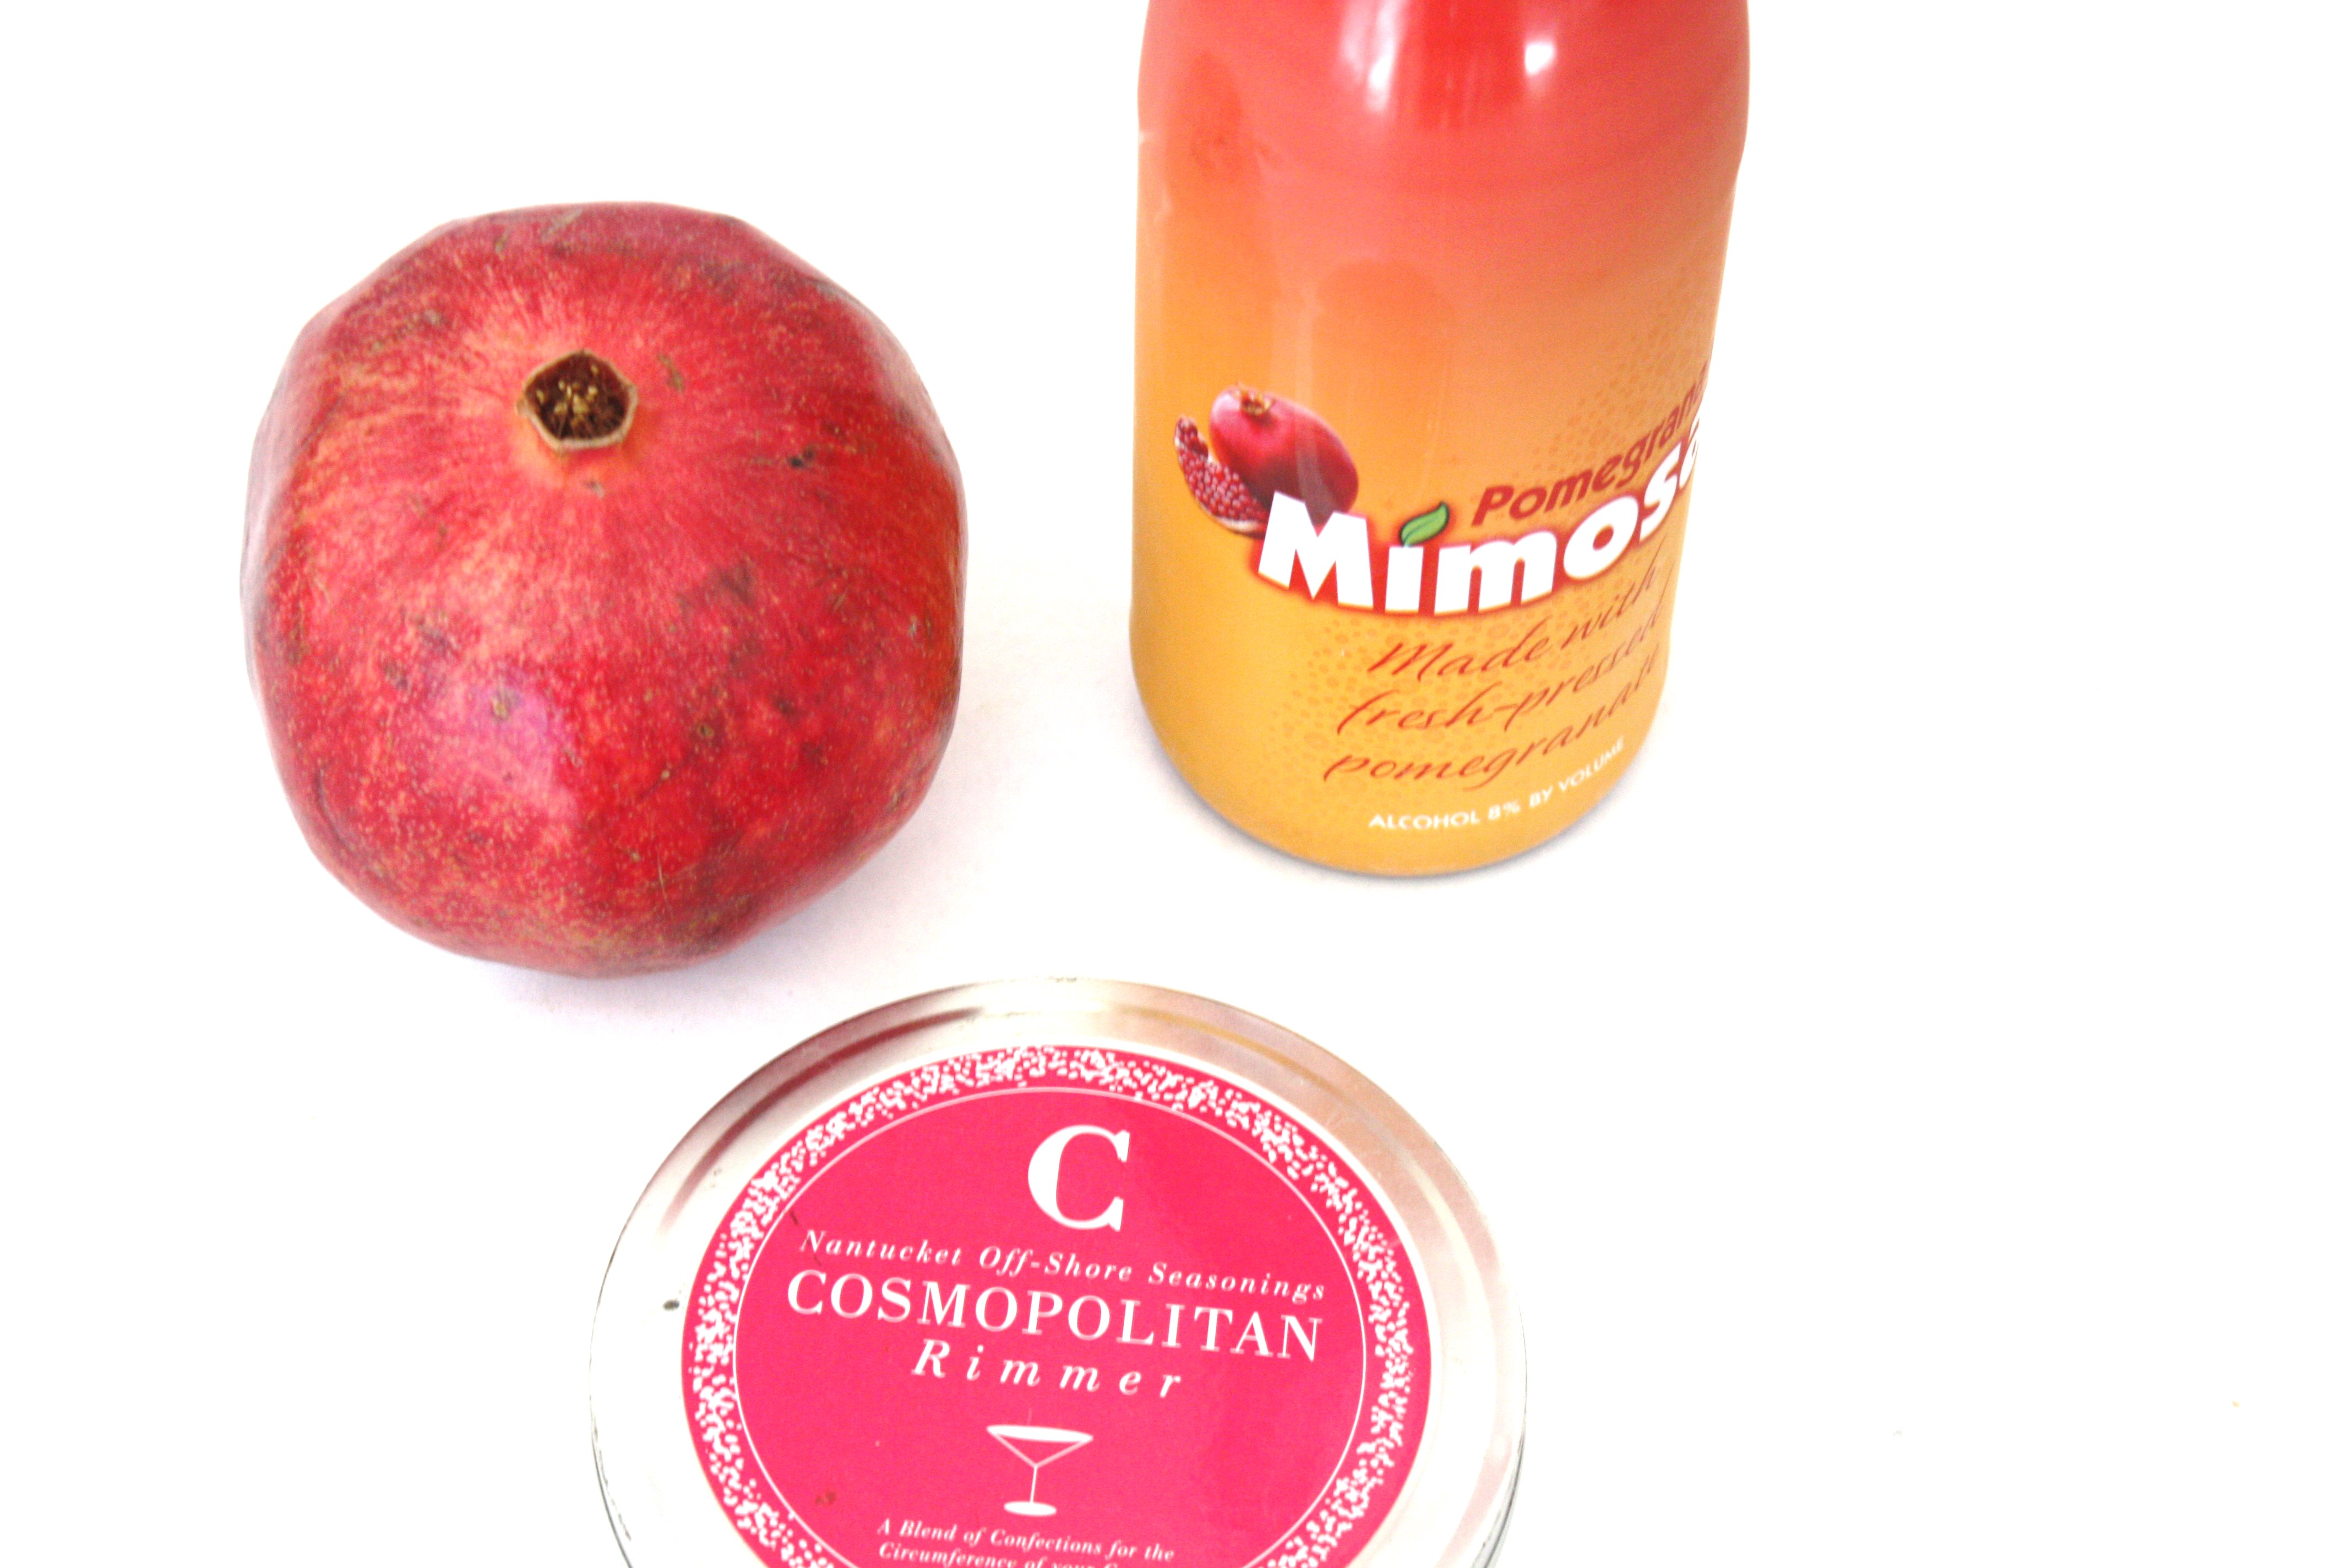 Pomegranate Mimosa Cocktail Recipe